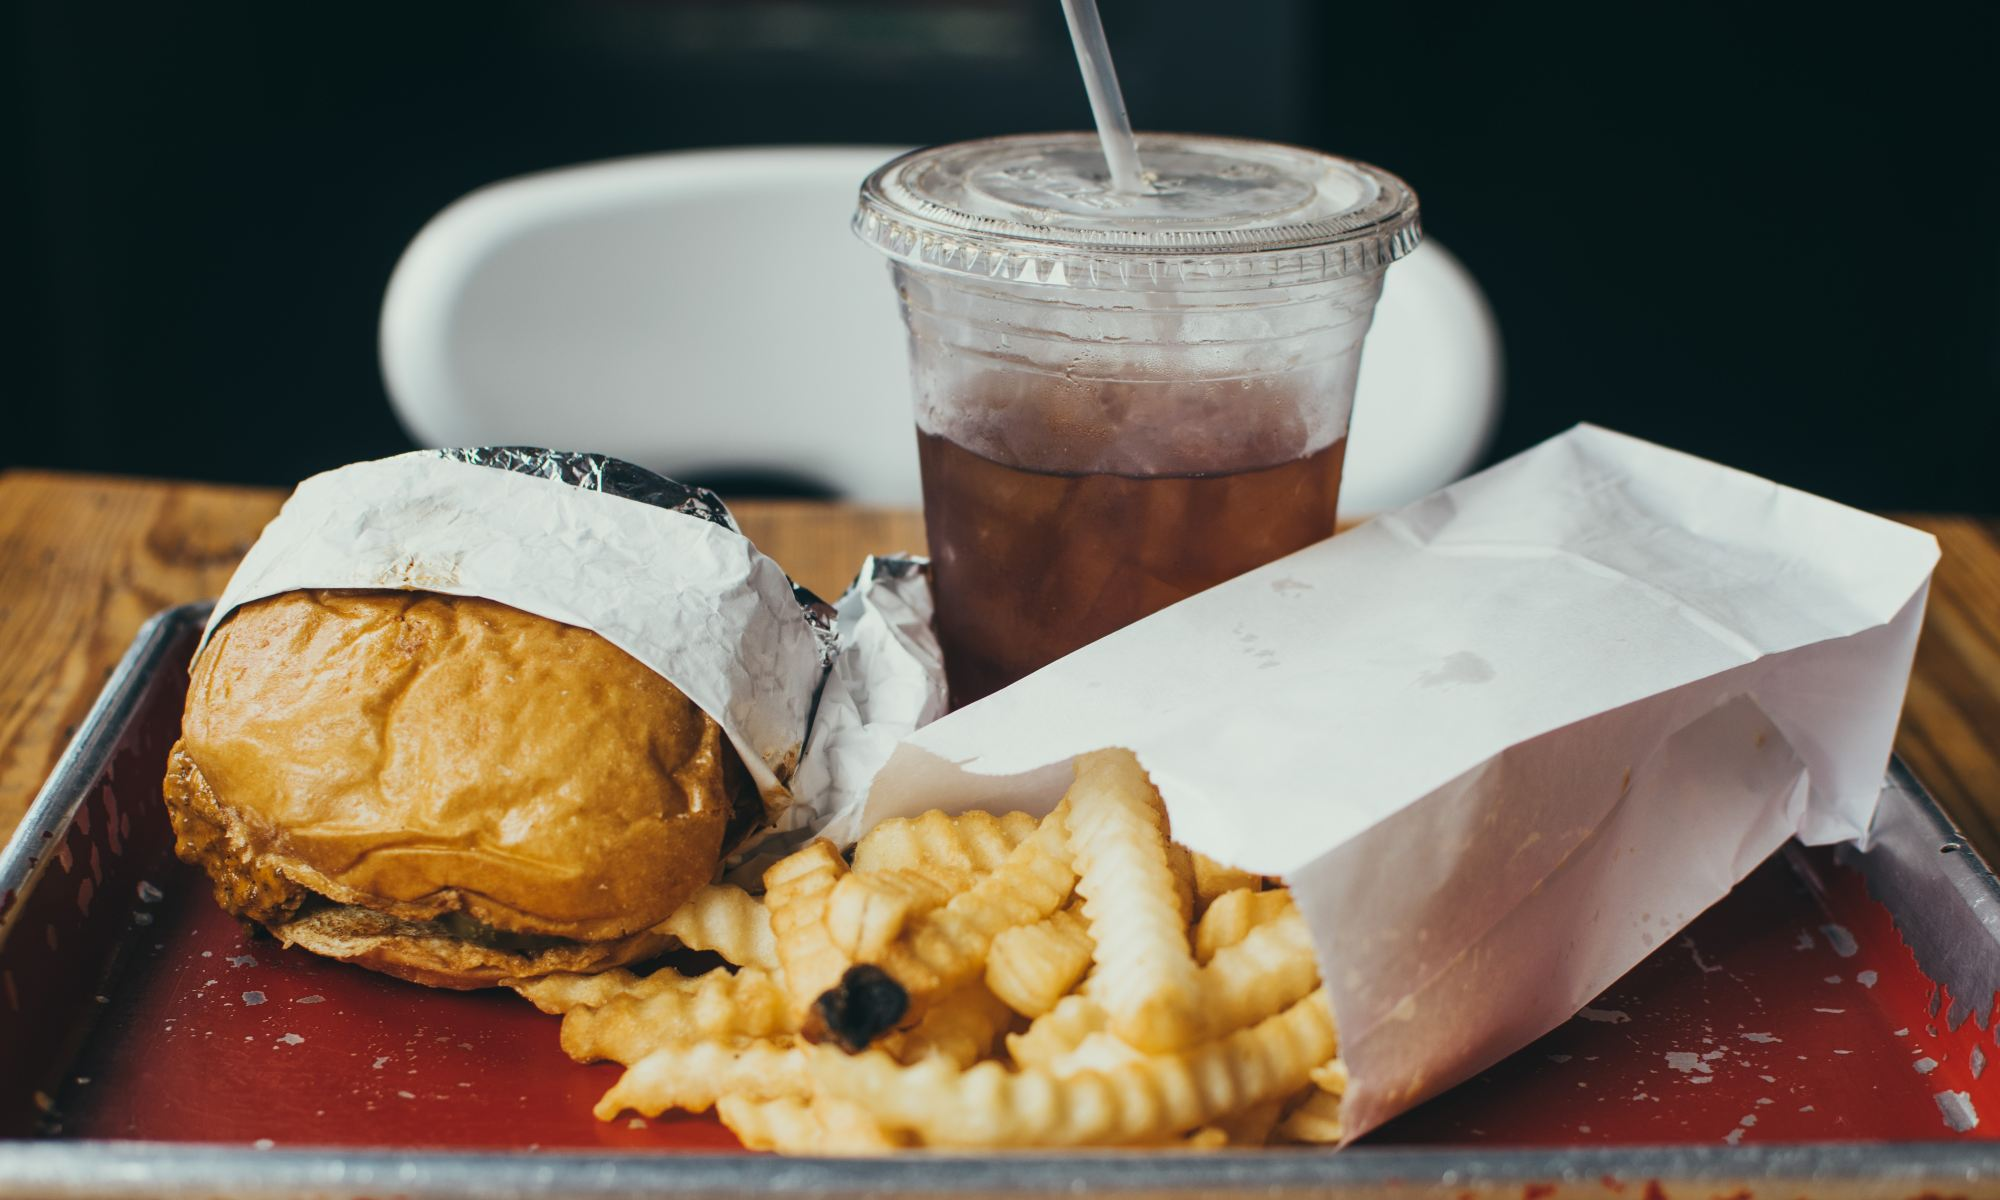 Addiction to burgers, fries and soda